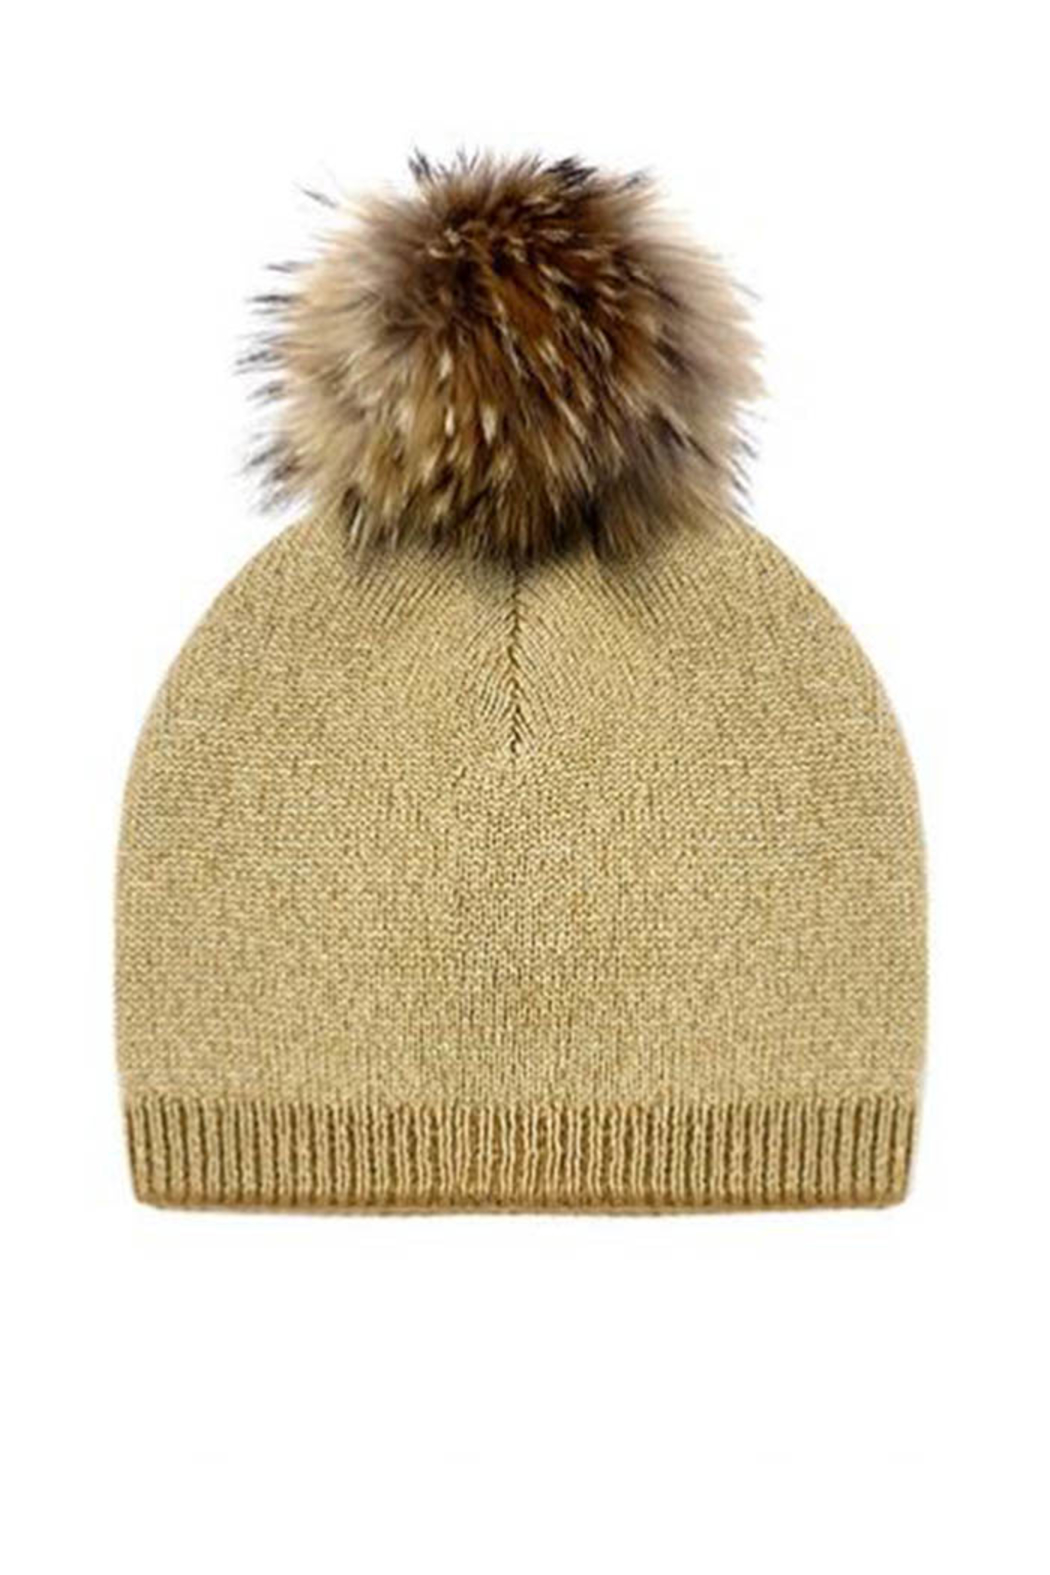 423f7f7fa Mitchies Matching Knit Wool Hat - Raccoon Pom from Salem by Curtsy ...